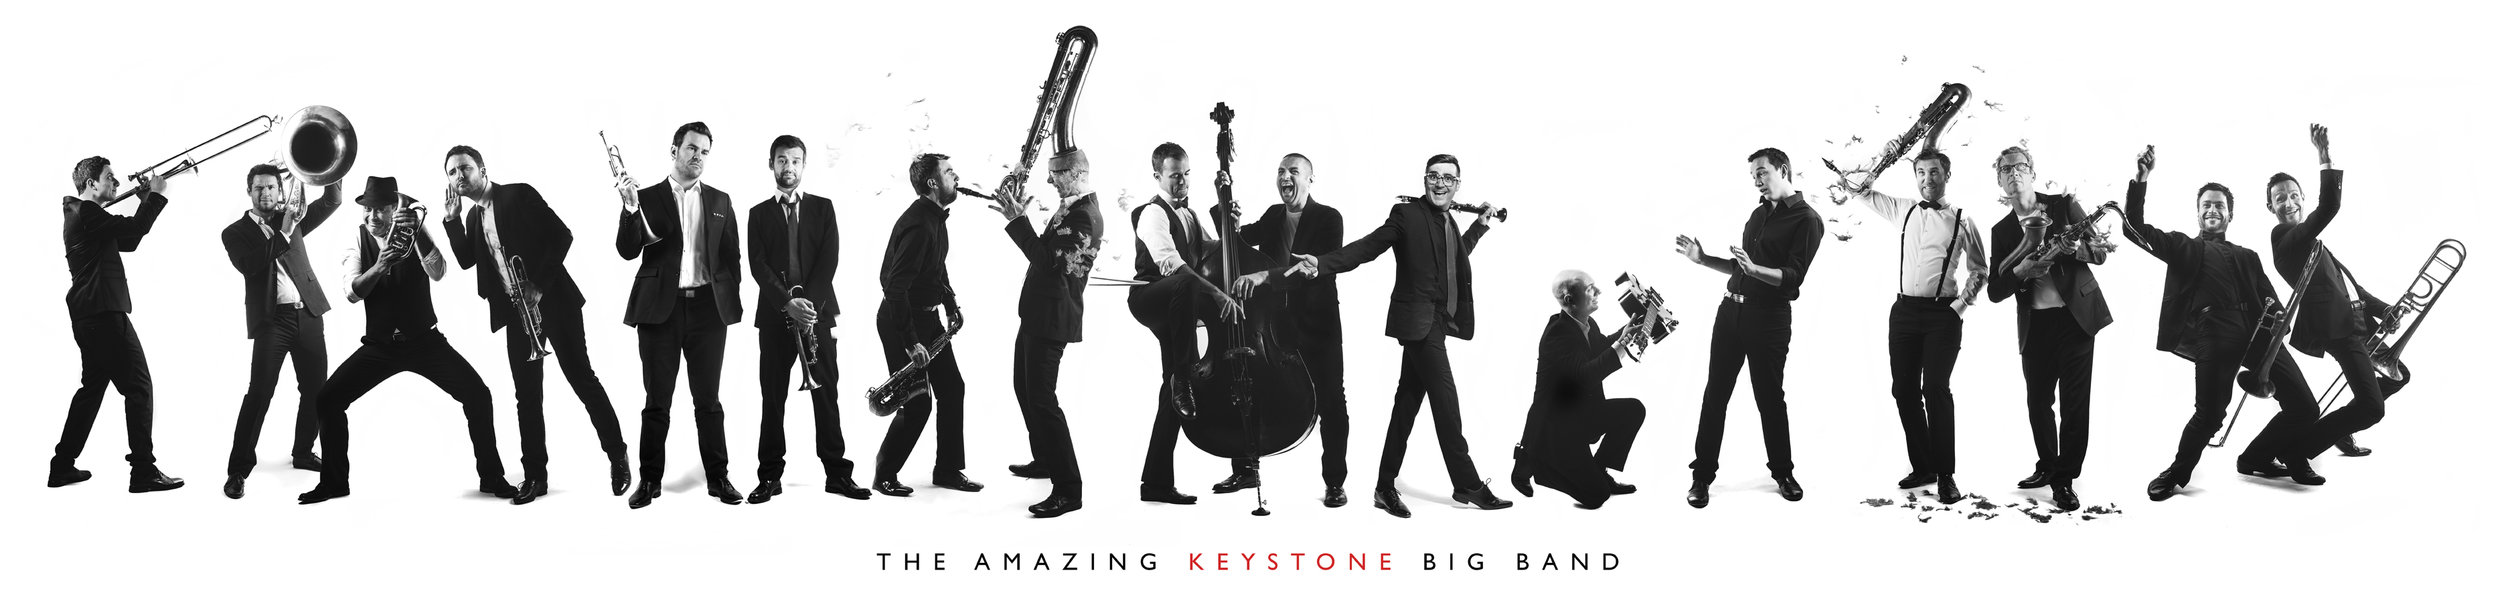 2--The-Amazing-Keystone-Big-Band---PANORAMIQUE---BLANC-HD.jpg